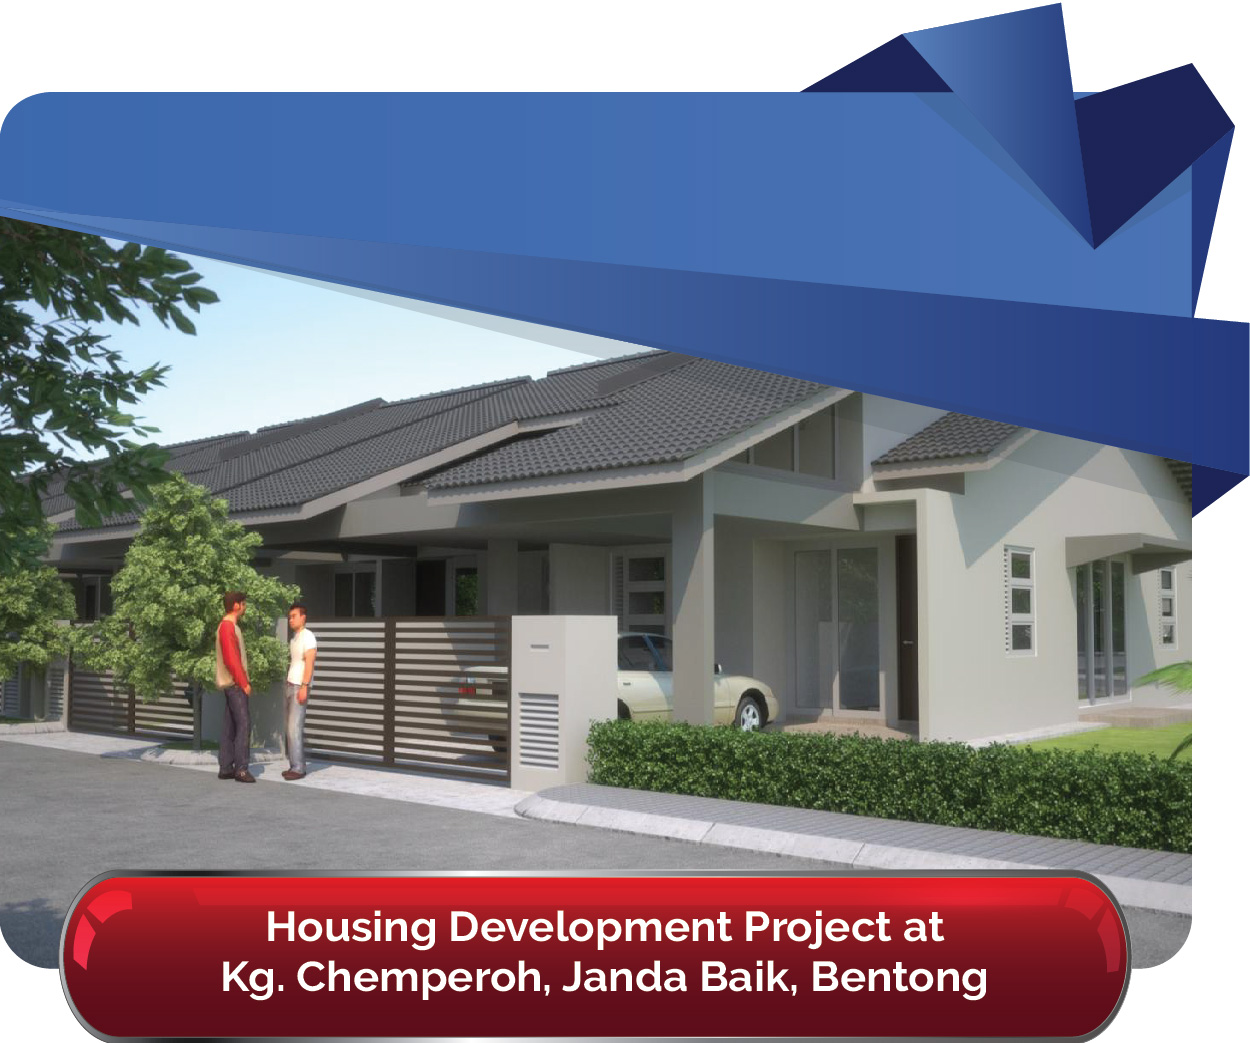 Housing Development Project at Kg. Chemperoh Janda Baik Bentong 01